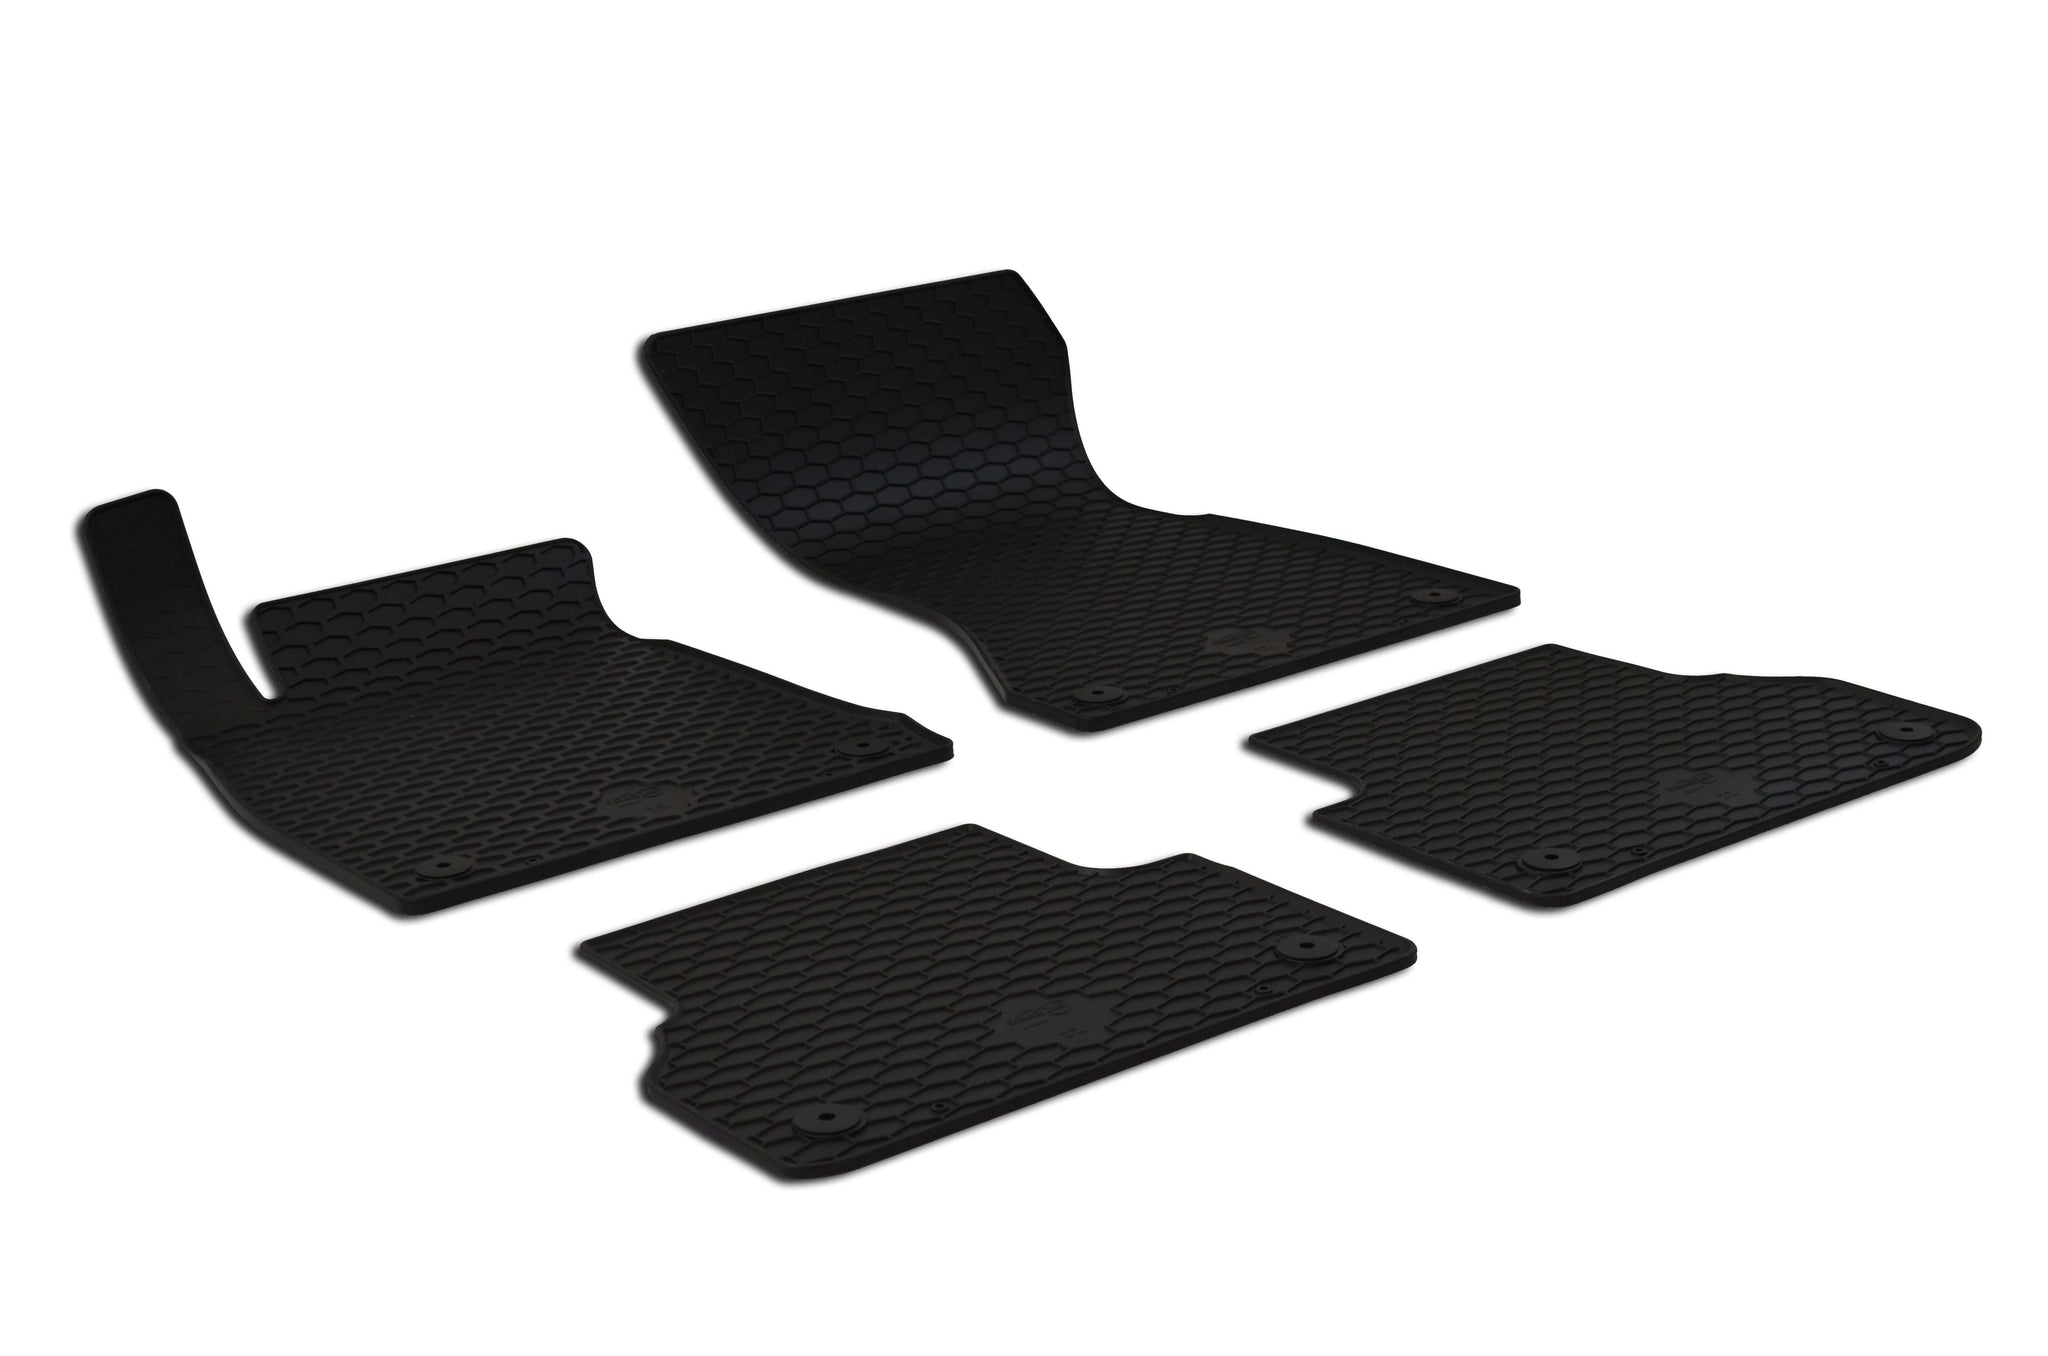 Audi A5 2019 Set of 4 Black Rubber OE Fit All Weather Car Floor Mats